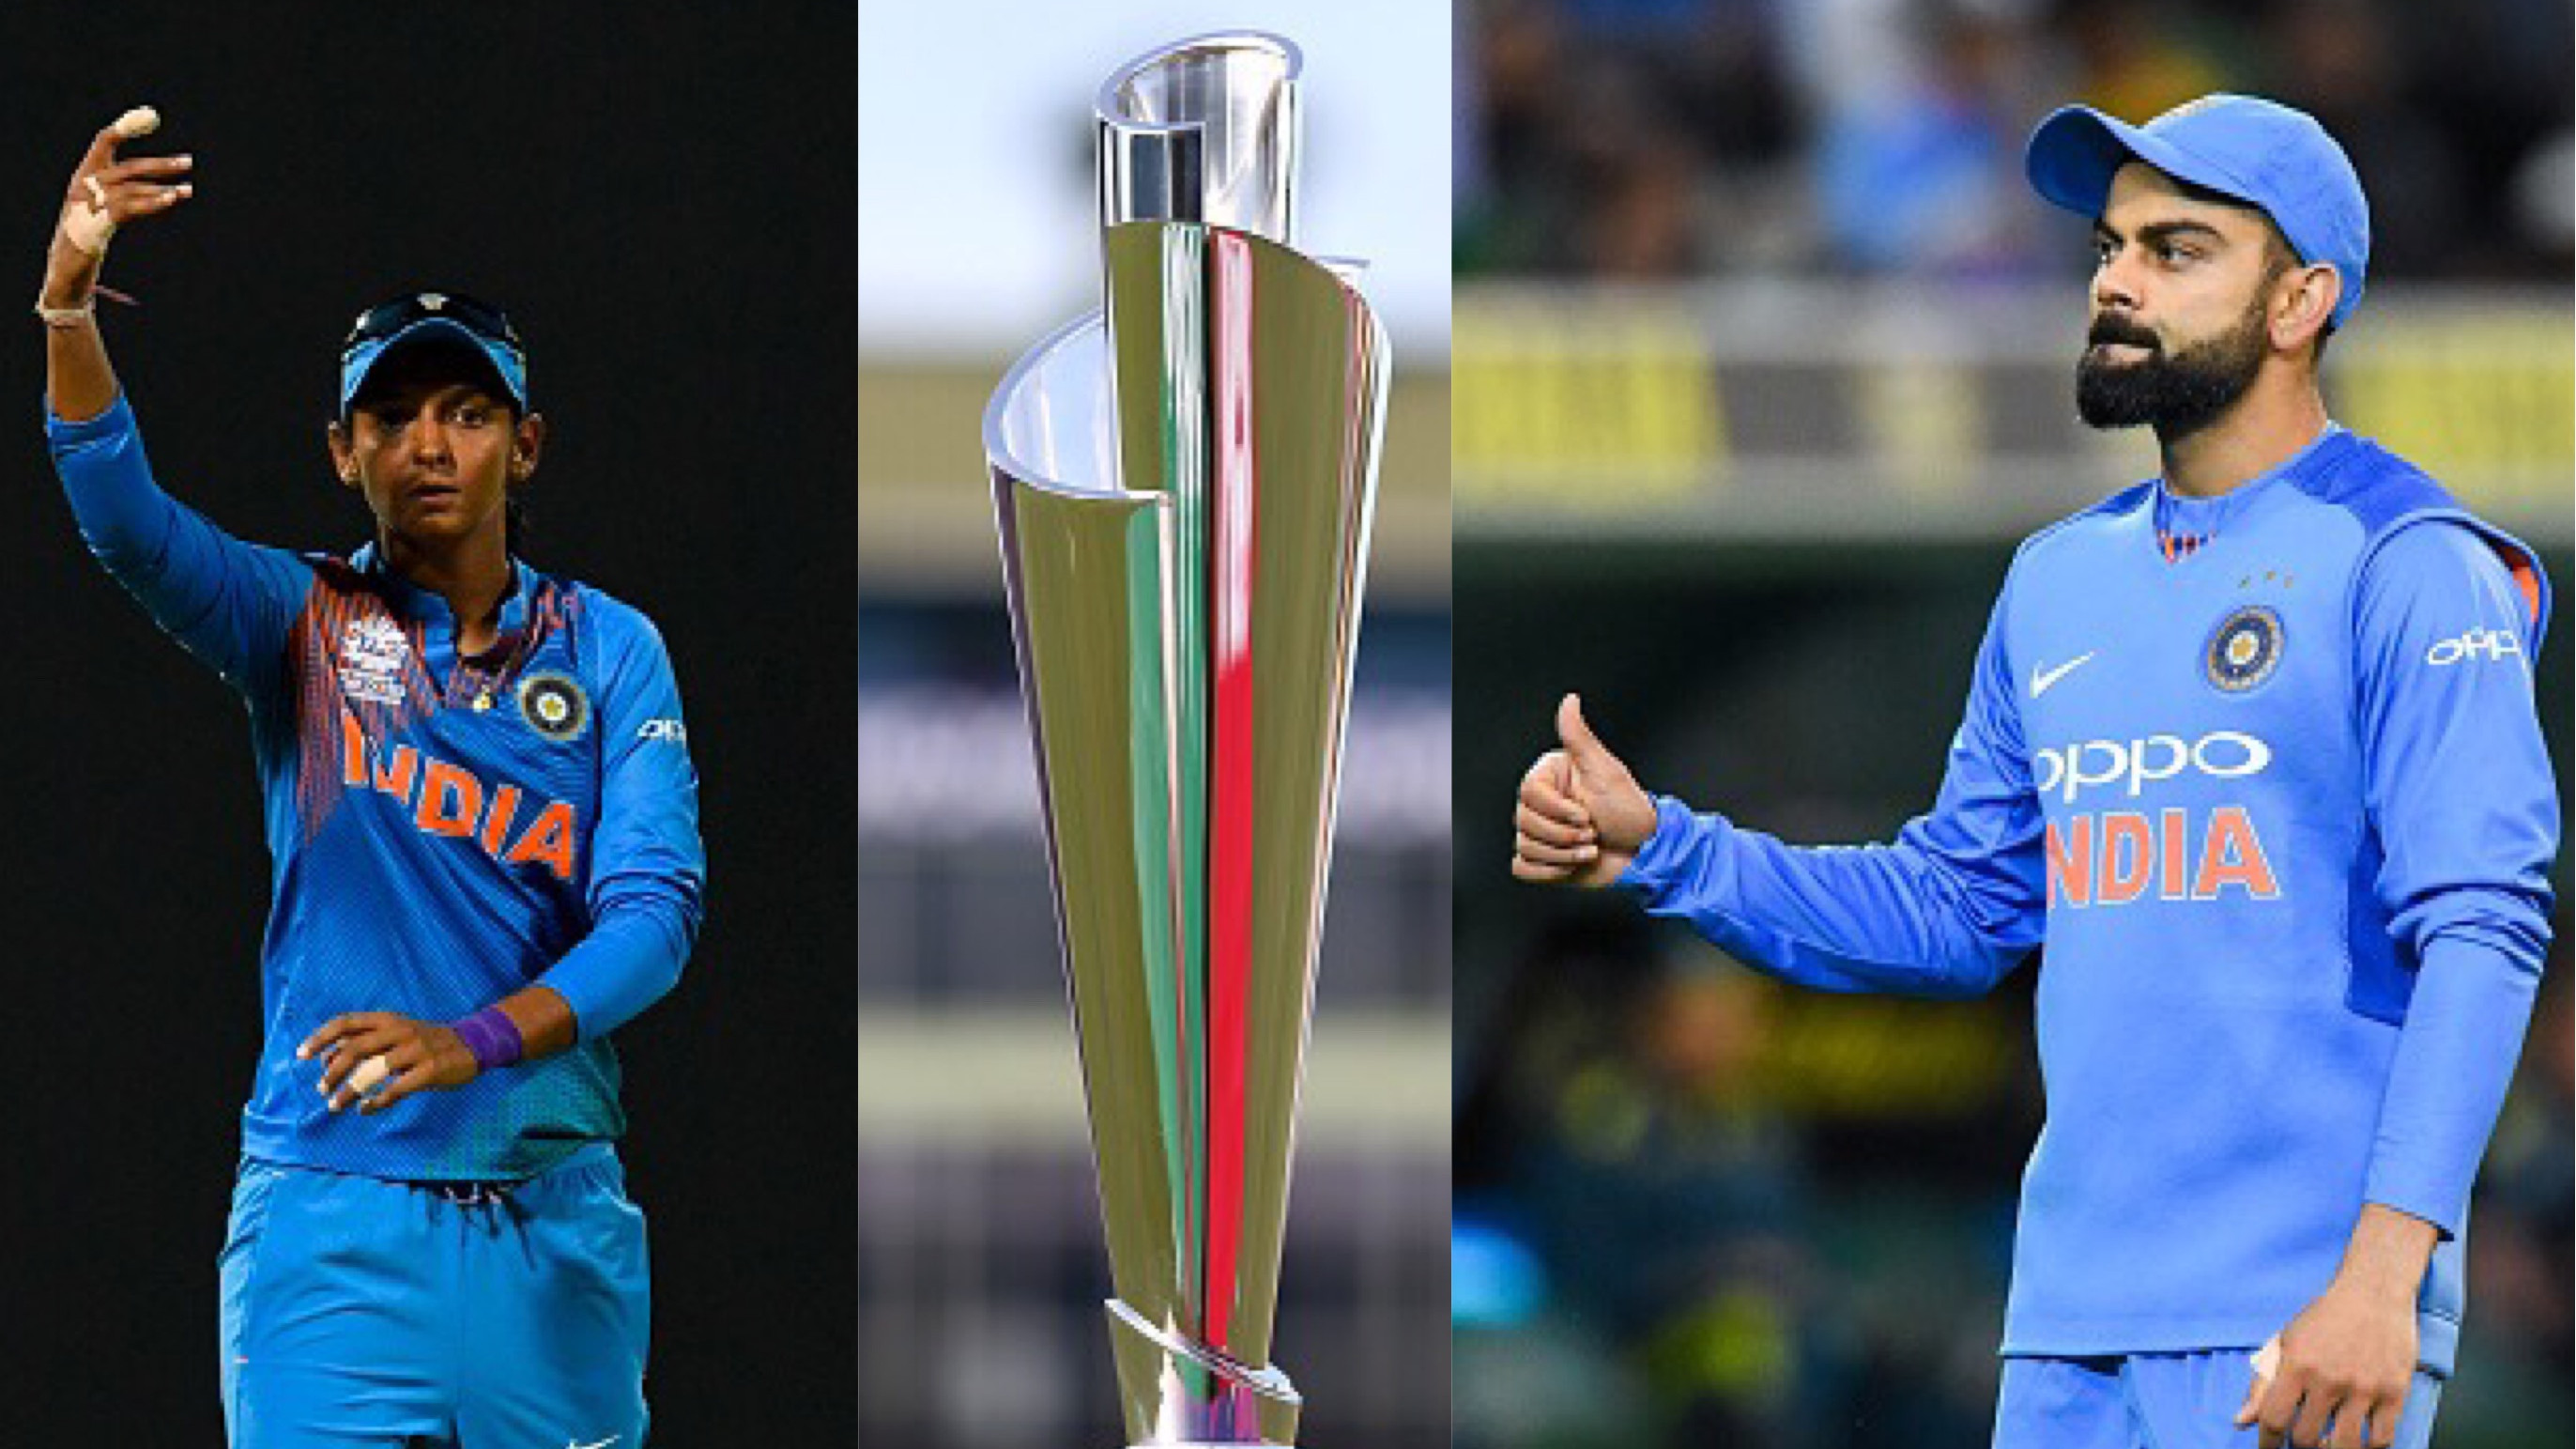 Harmanpreet Kaur and Virat Kohli welcome ICC's decision to rename World T20 as T20 World Cup